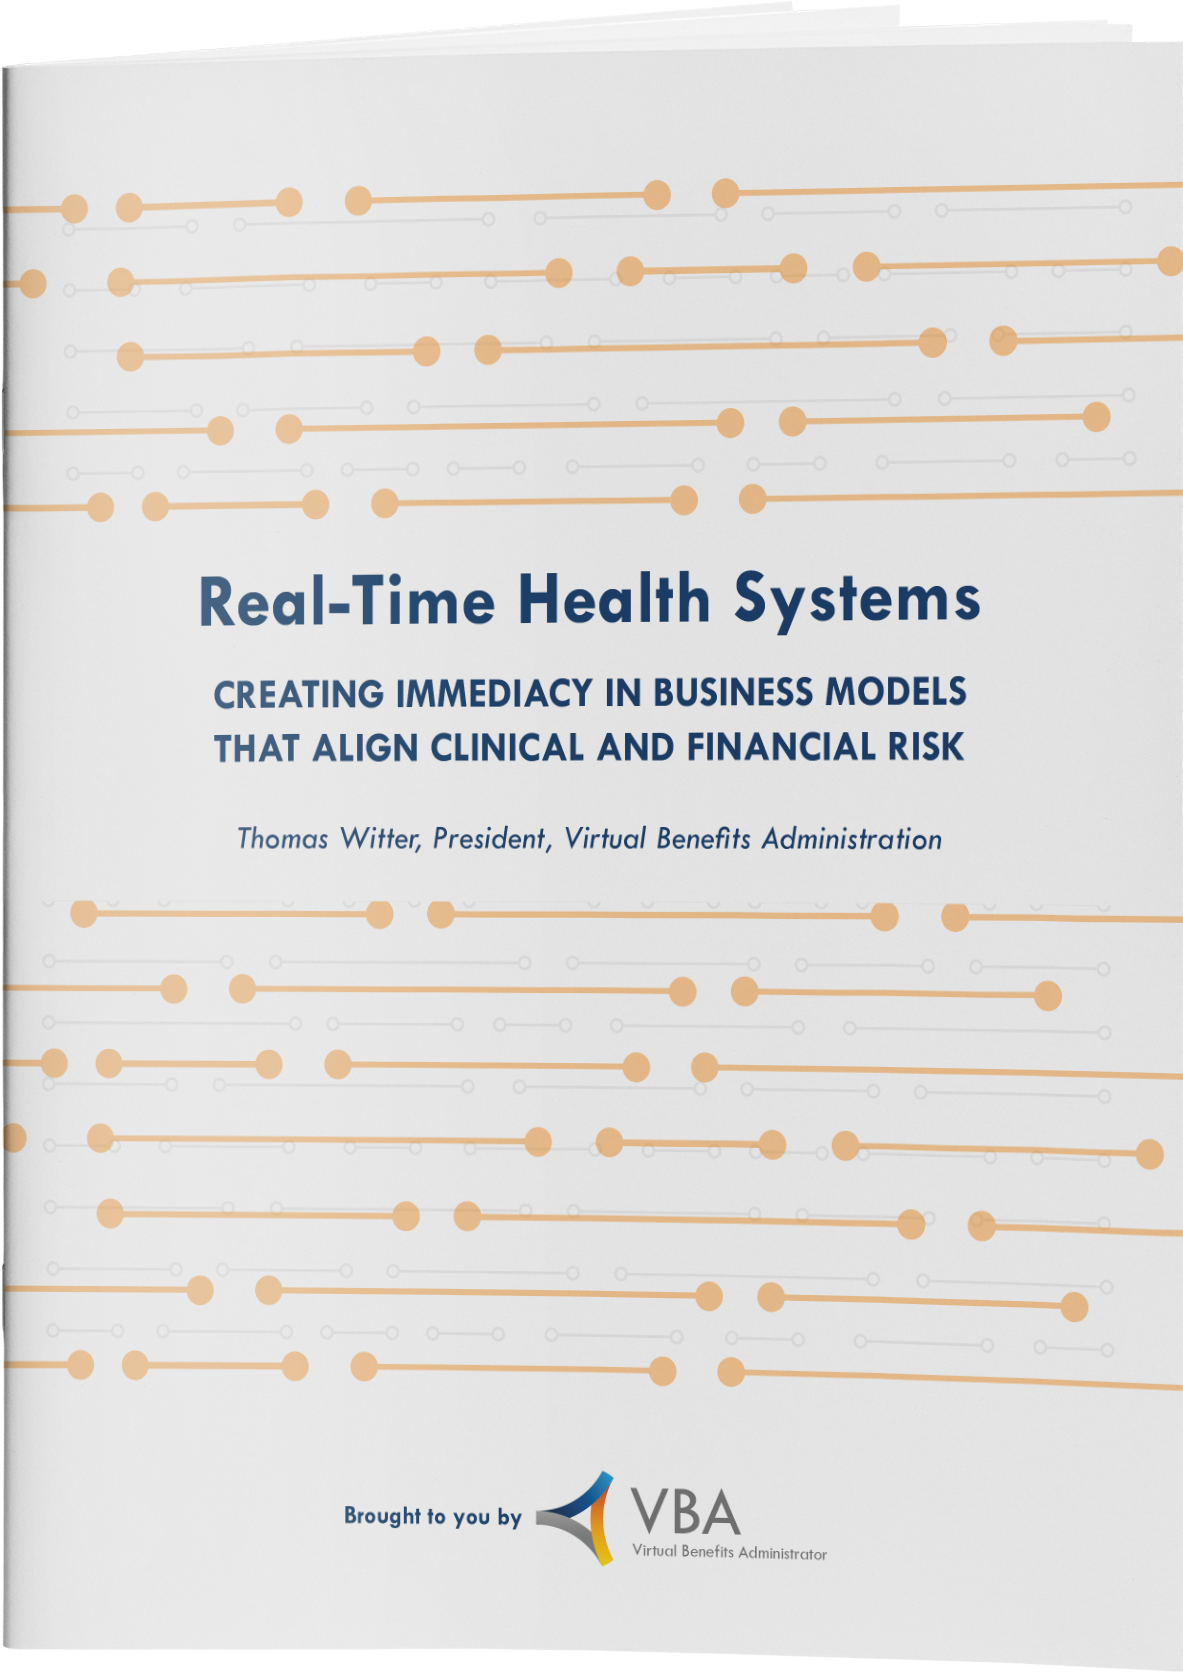 Real-Time Health Systems White Paper Cover